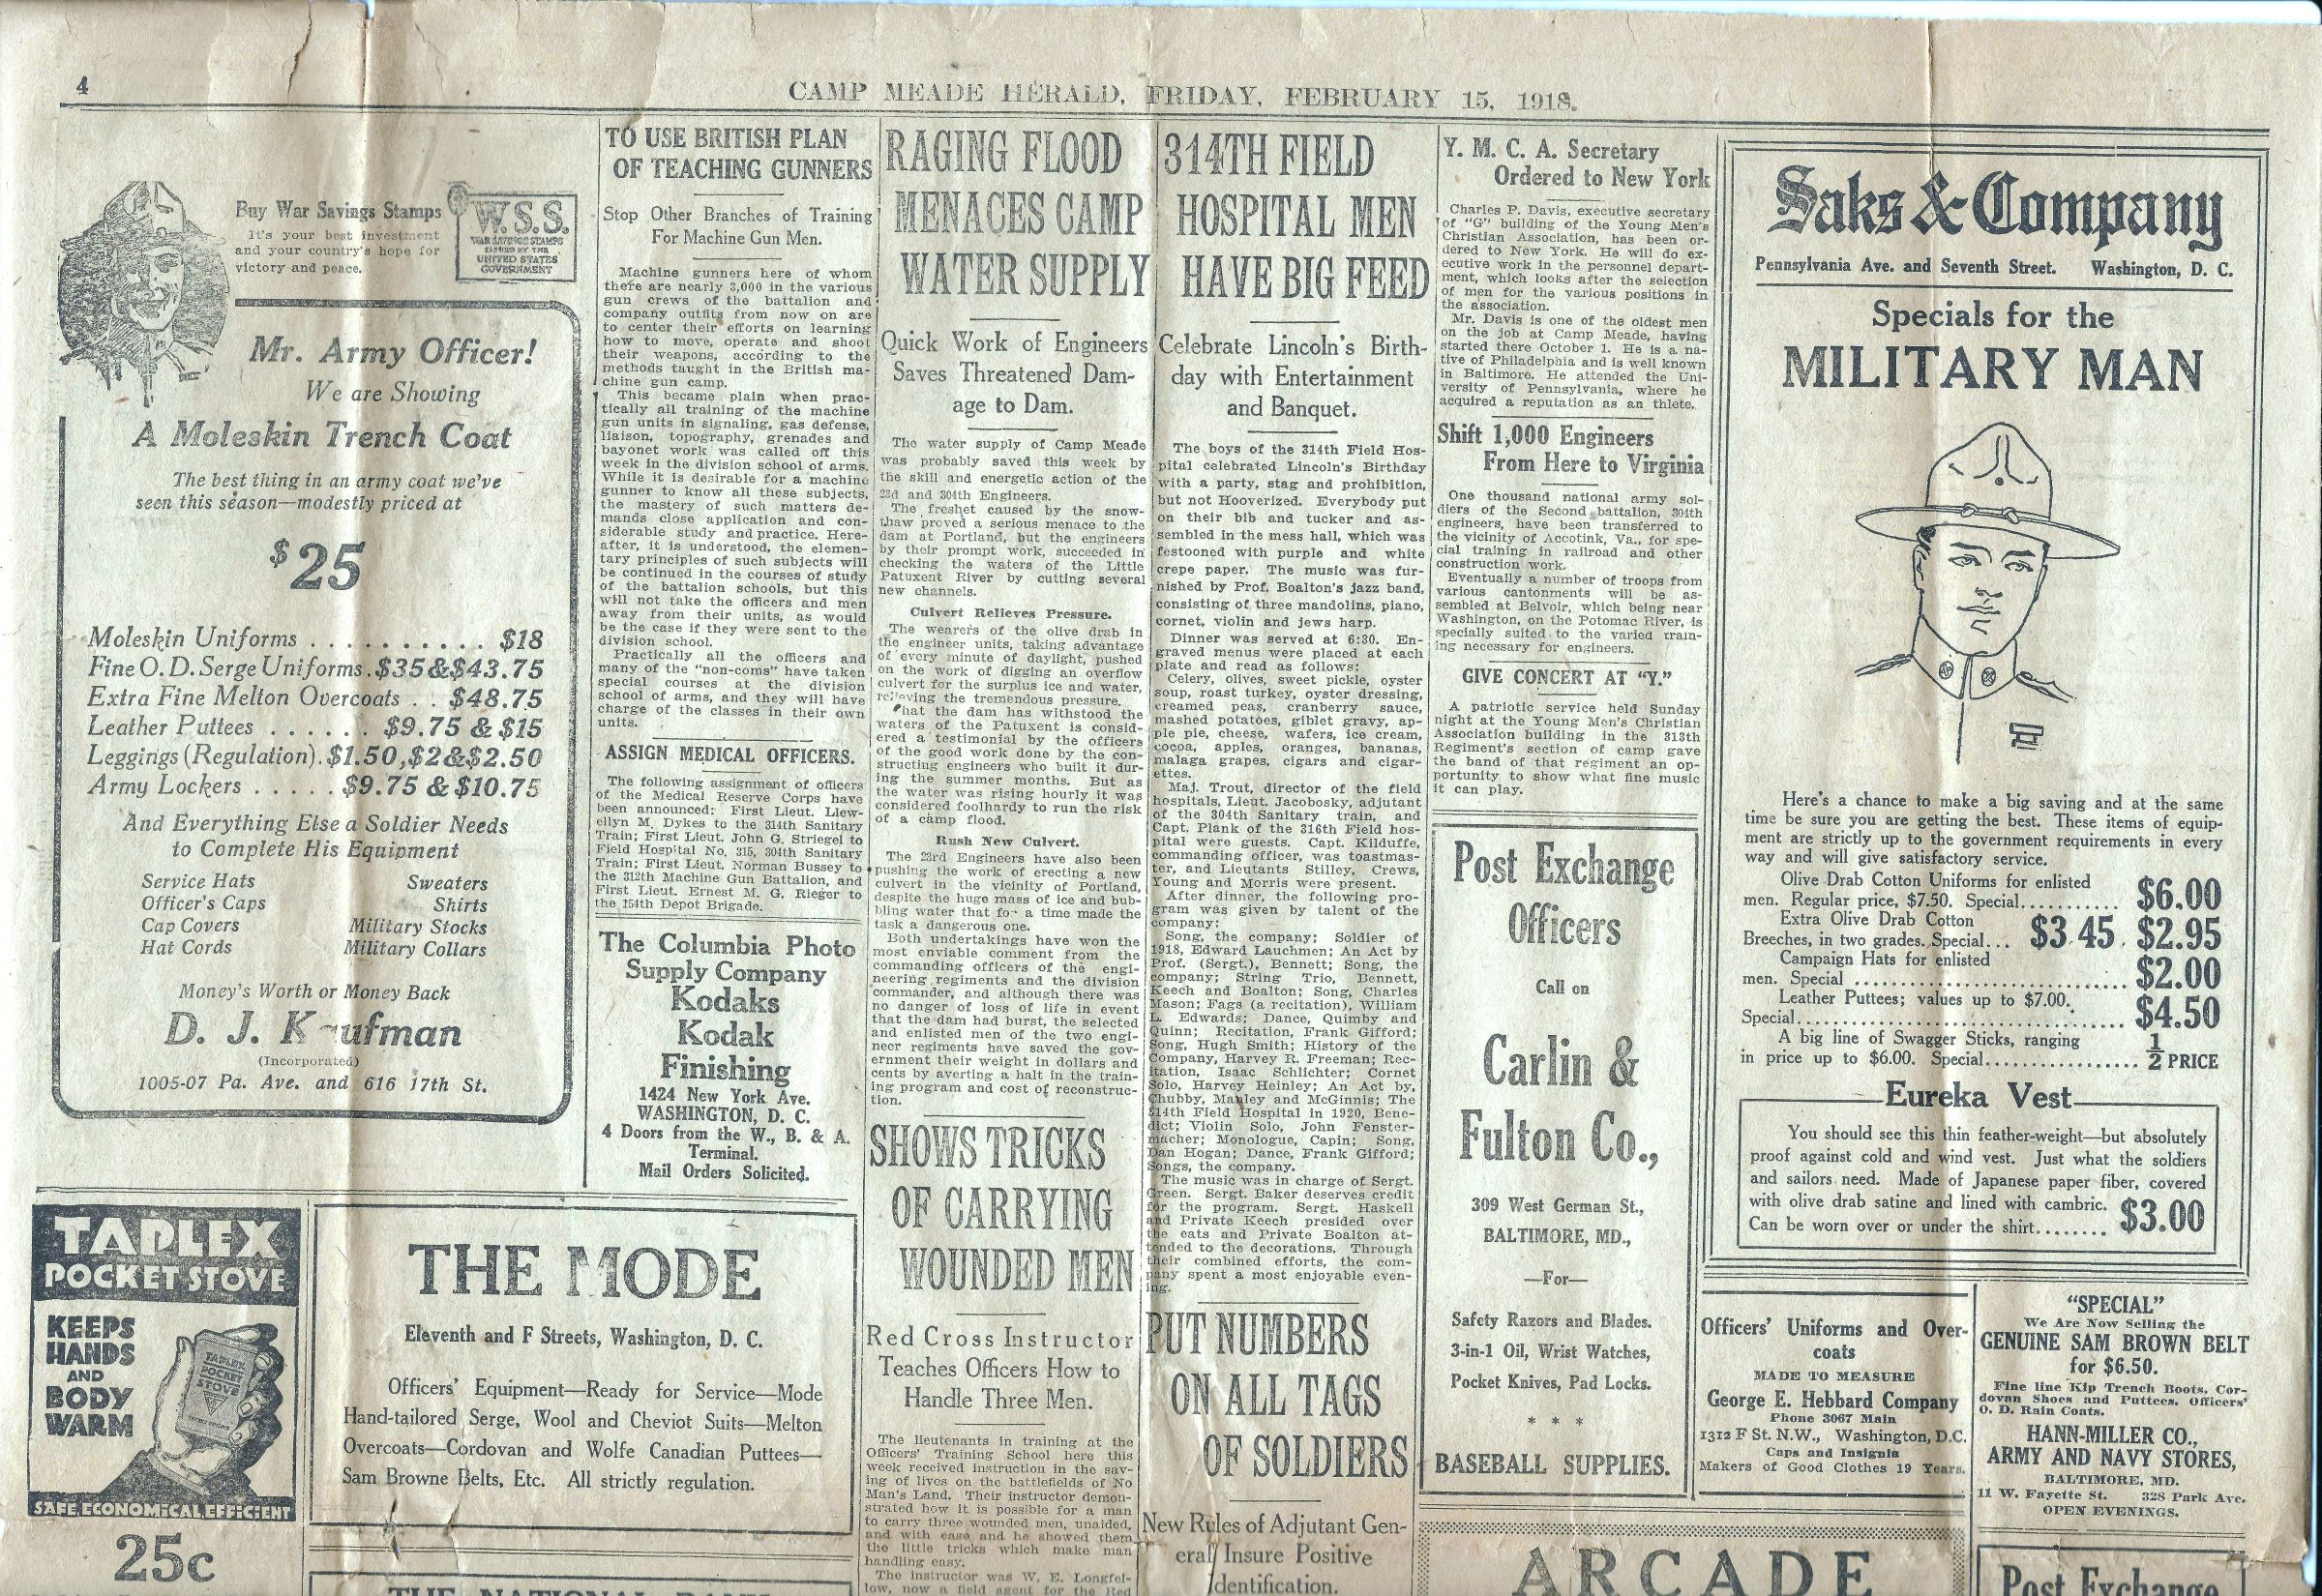 Camp Meade Herald newspaper - February 15 1918 - Page 4 Top